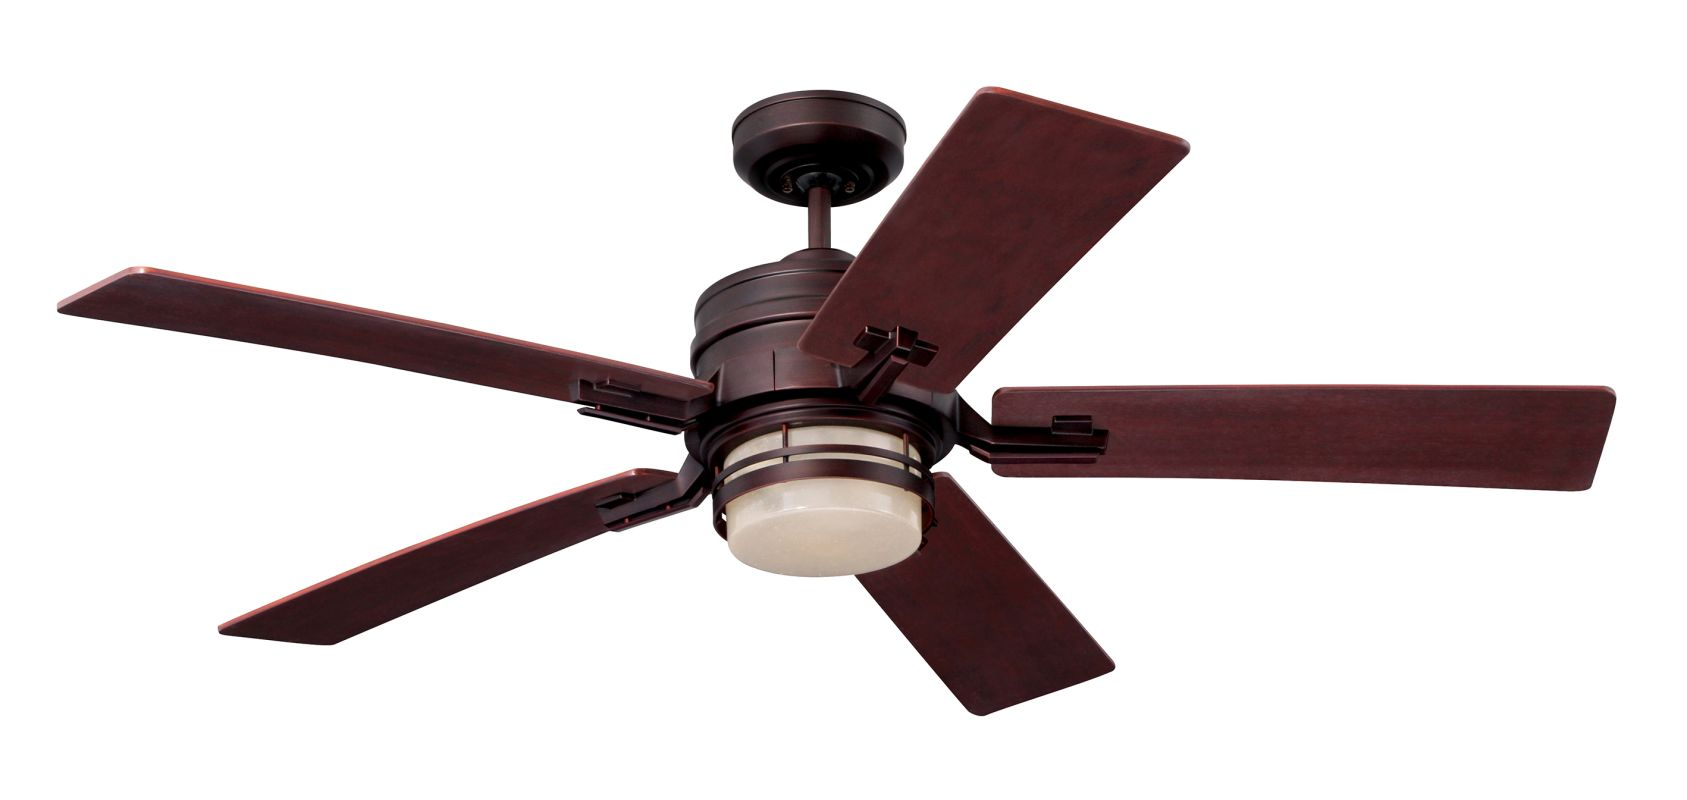 "Emerson CF880 Amhurst 54"" 5 Blade Ceiling Fan - Blades and Light Kit"